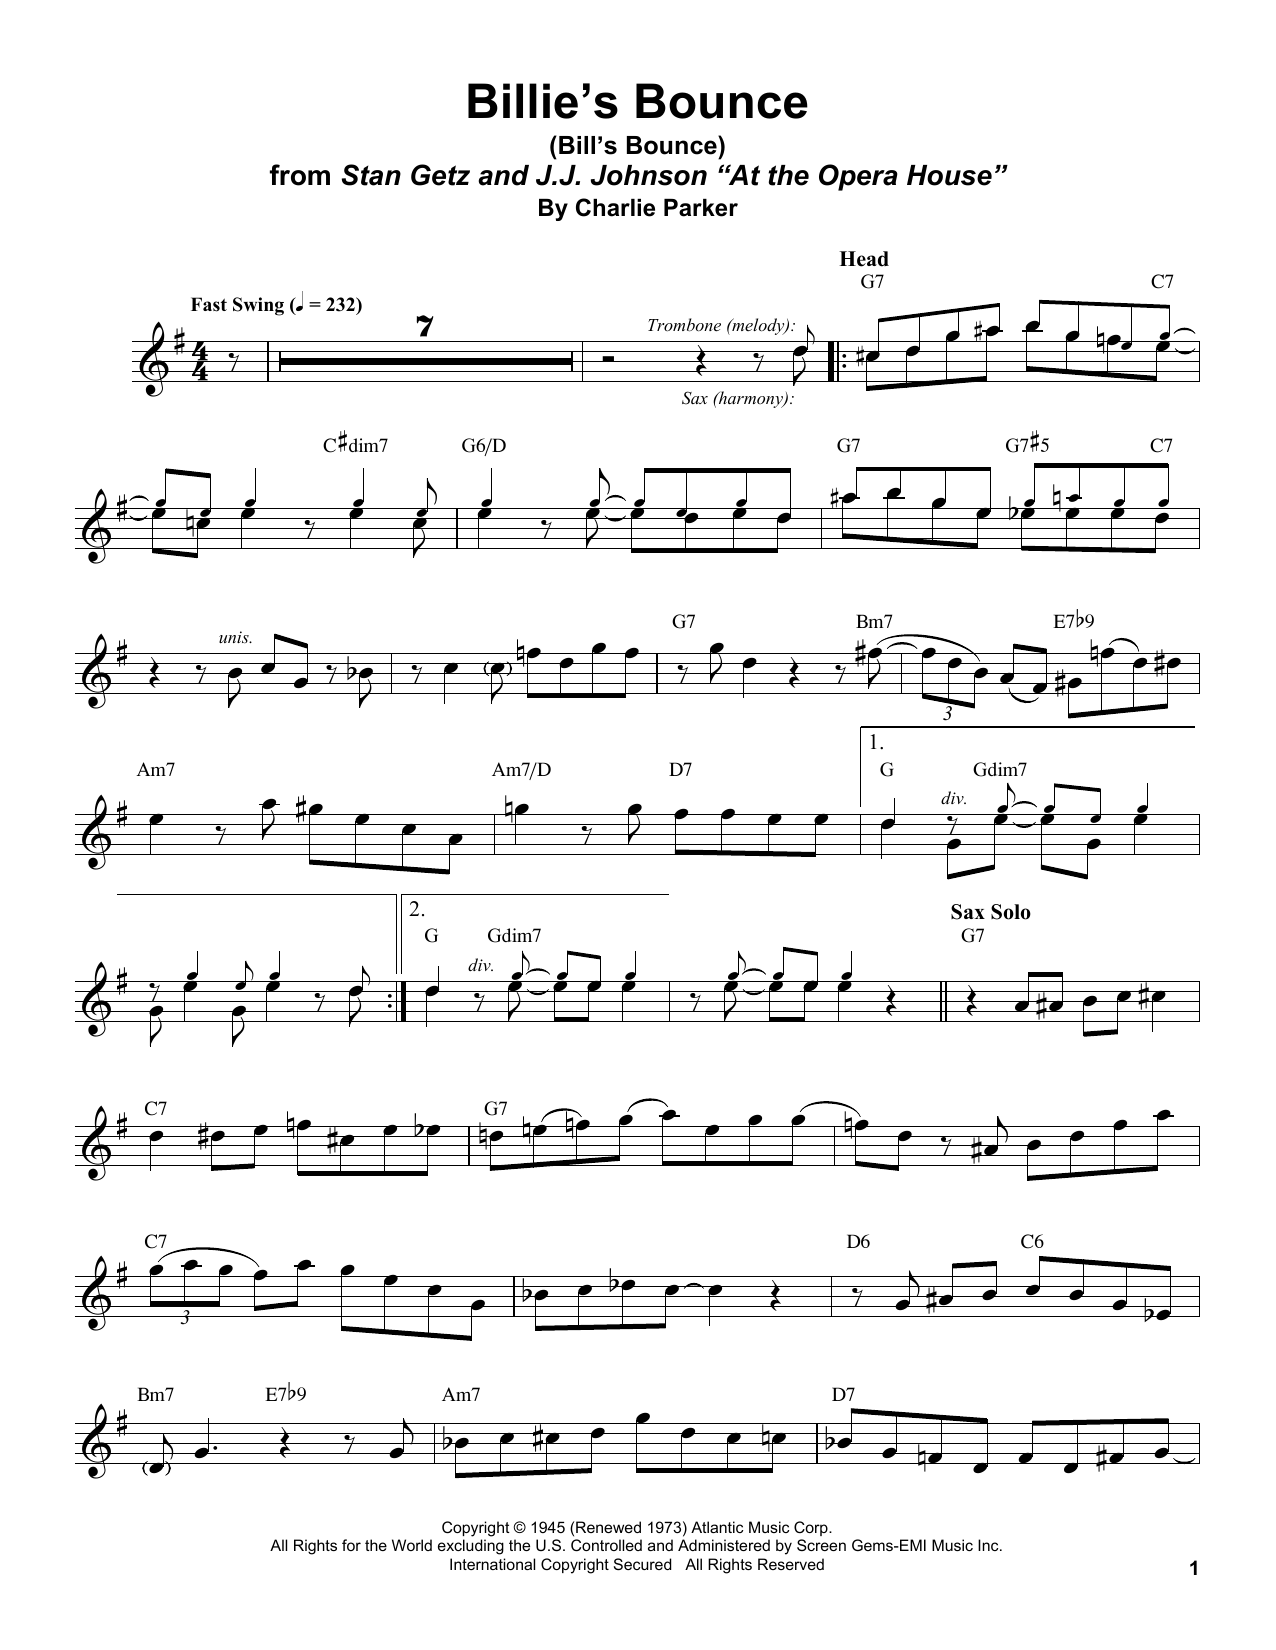 Stan Getz Billie's Bounce (Bill's Bounce) sheet music notes and chords